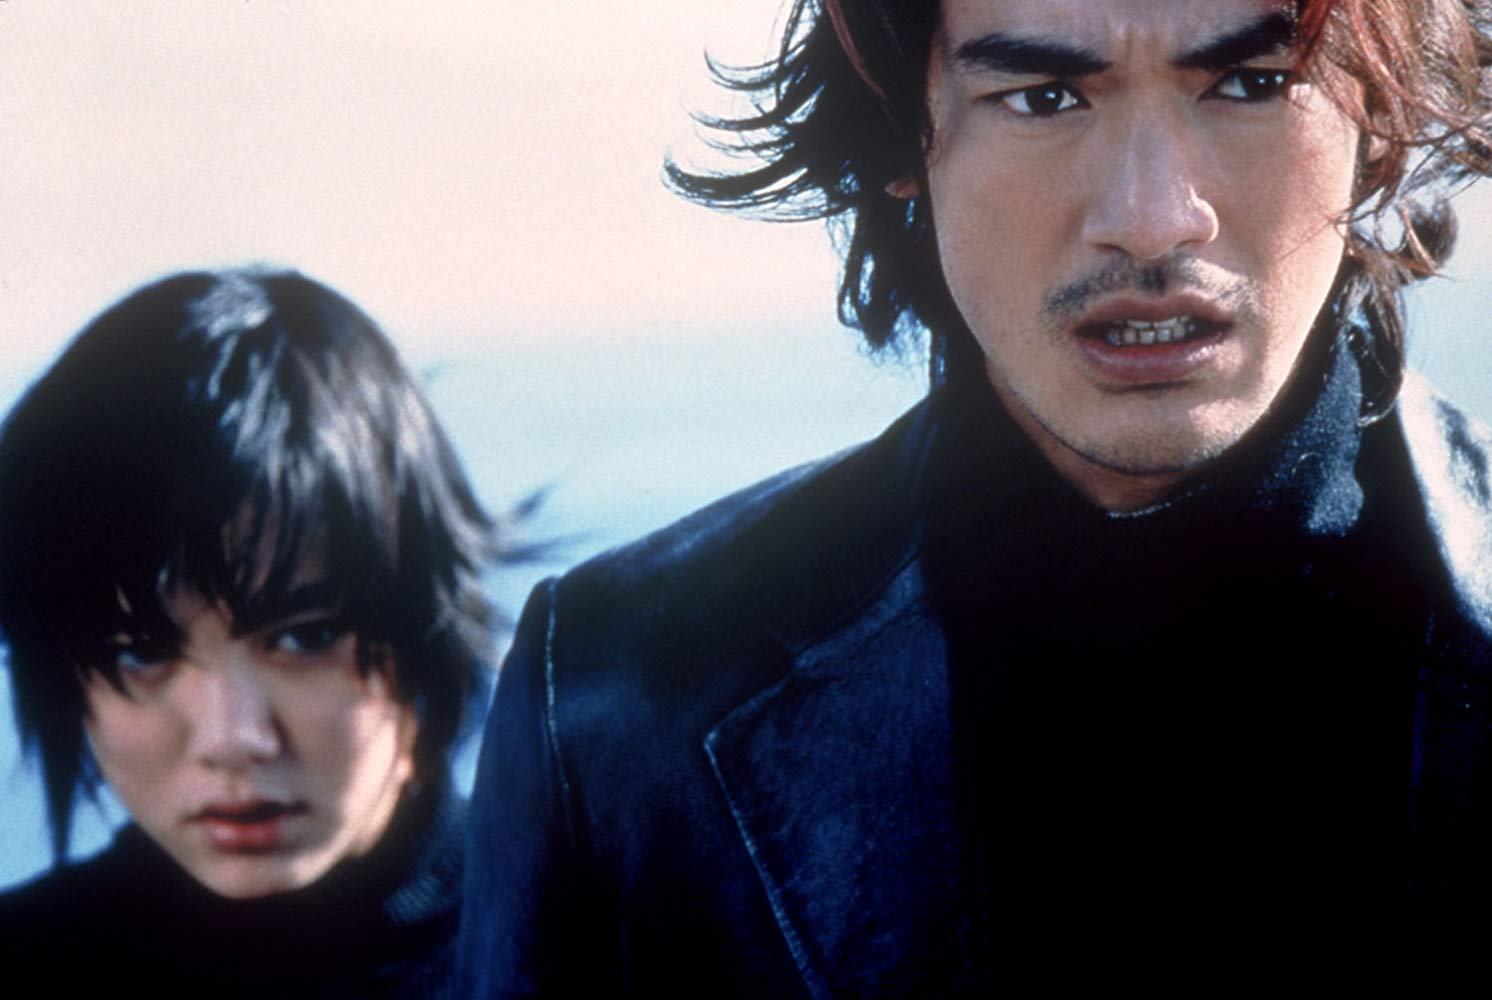 Milly (Anne Suzuki) and Miyamoto (Takeshi Kaneshiro) in the midst of time travel and alien invasion action in Returner (2002)